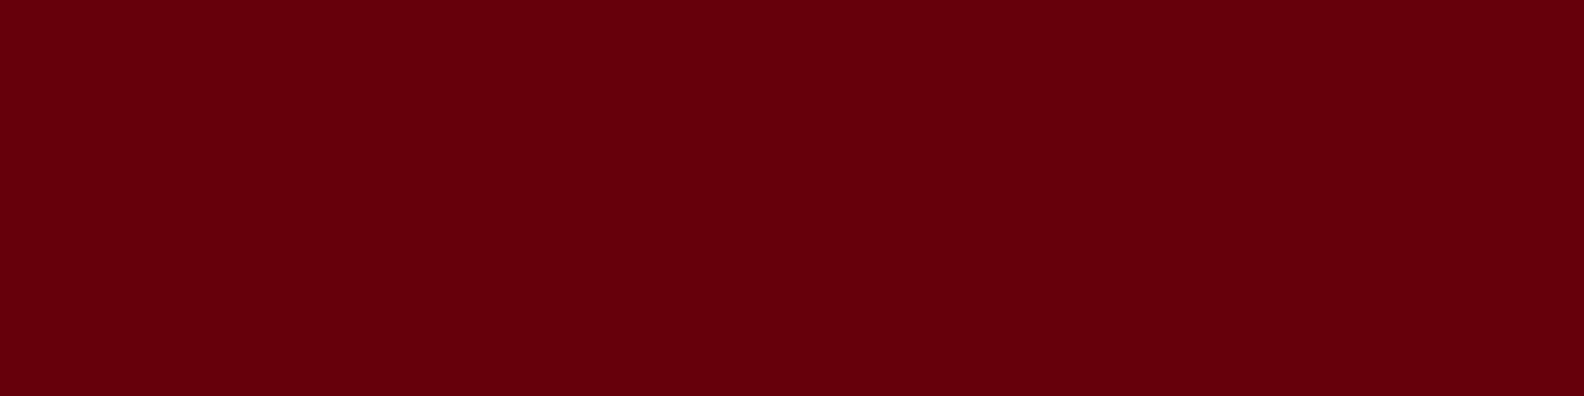 1584x396 Rosewood Solid Color Background